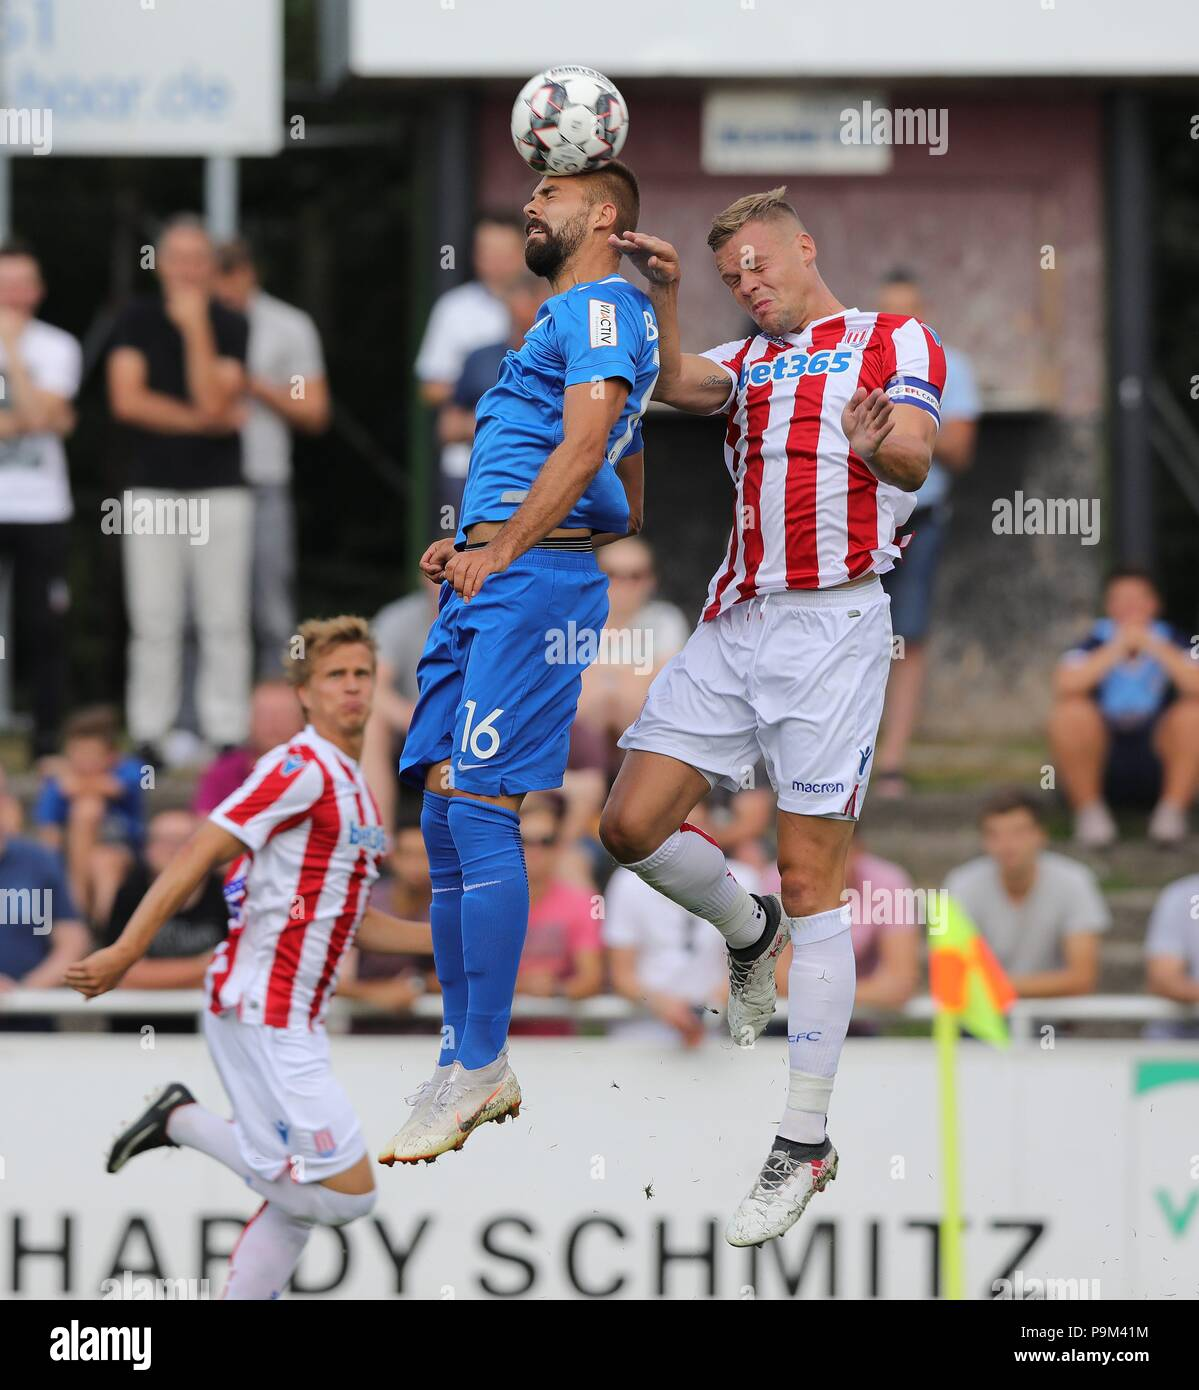 firo: 18.07.2018, Football, 2.Bundesliga, Season 2018/2019, VfL Bochum - Stoke City in Rheine Lukas HINTERSEER, Bochum, duels | - Stock Image